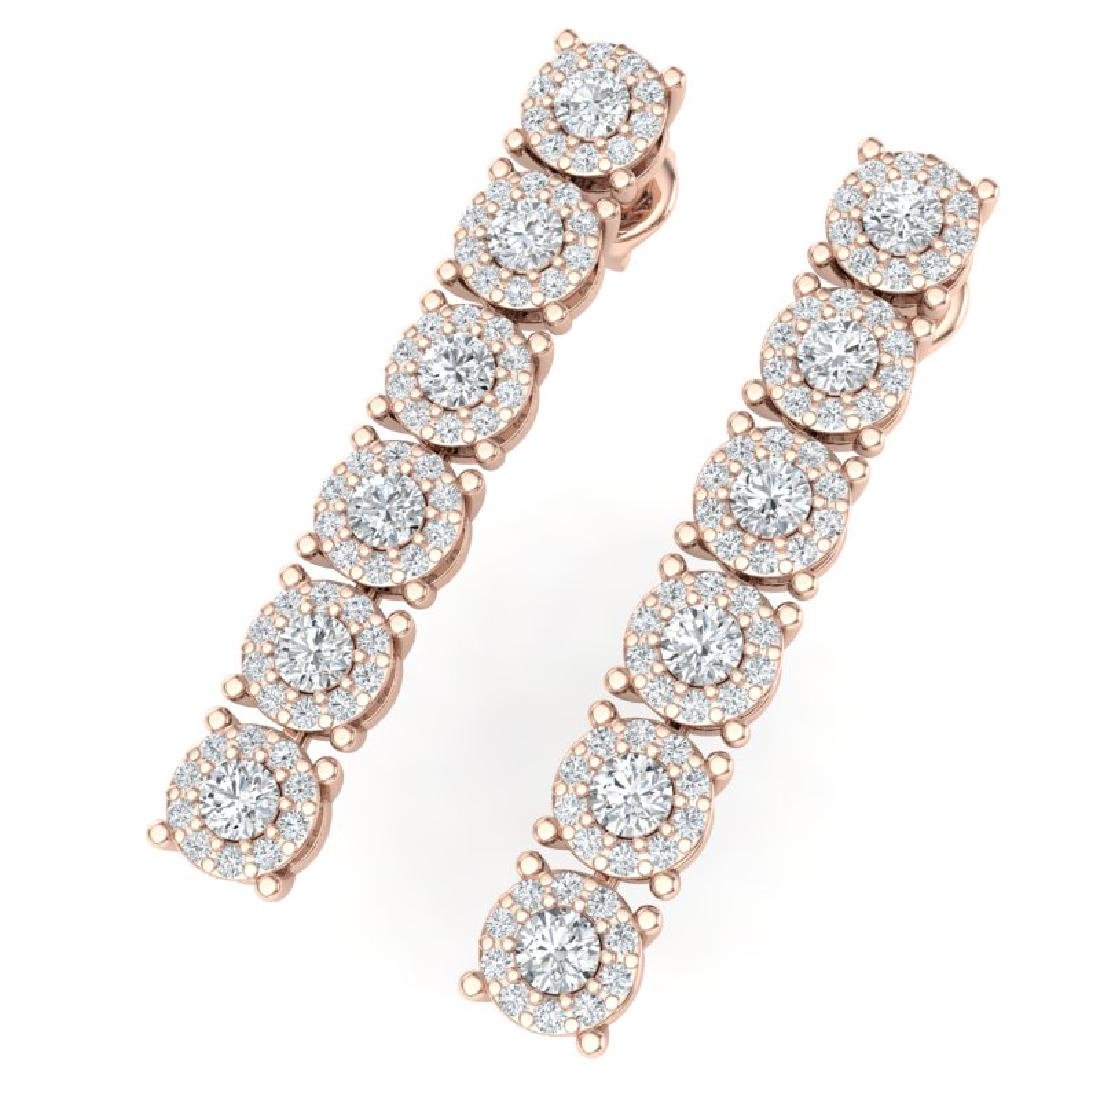 2 CTW Certified SI/I Diamond Halo Earrings 18K Rose